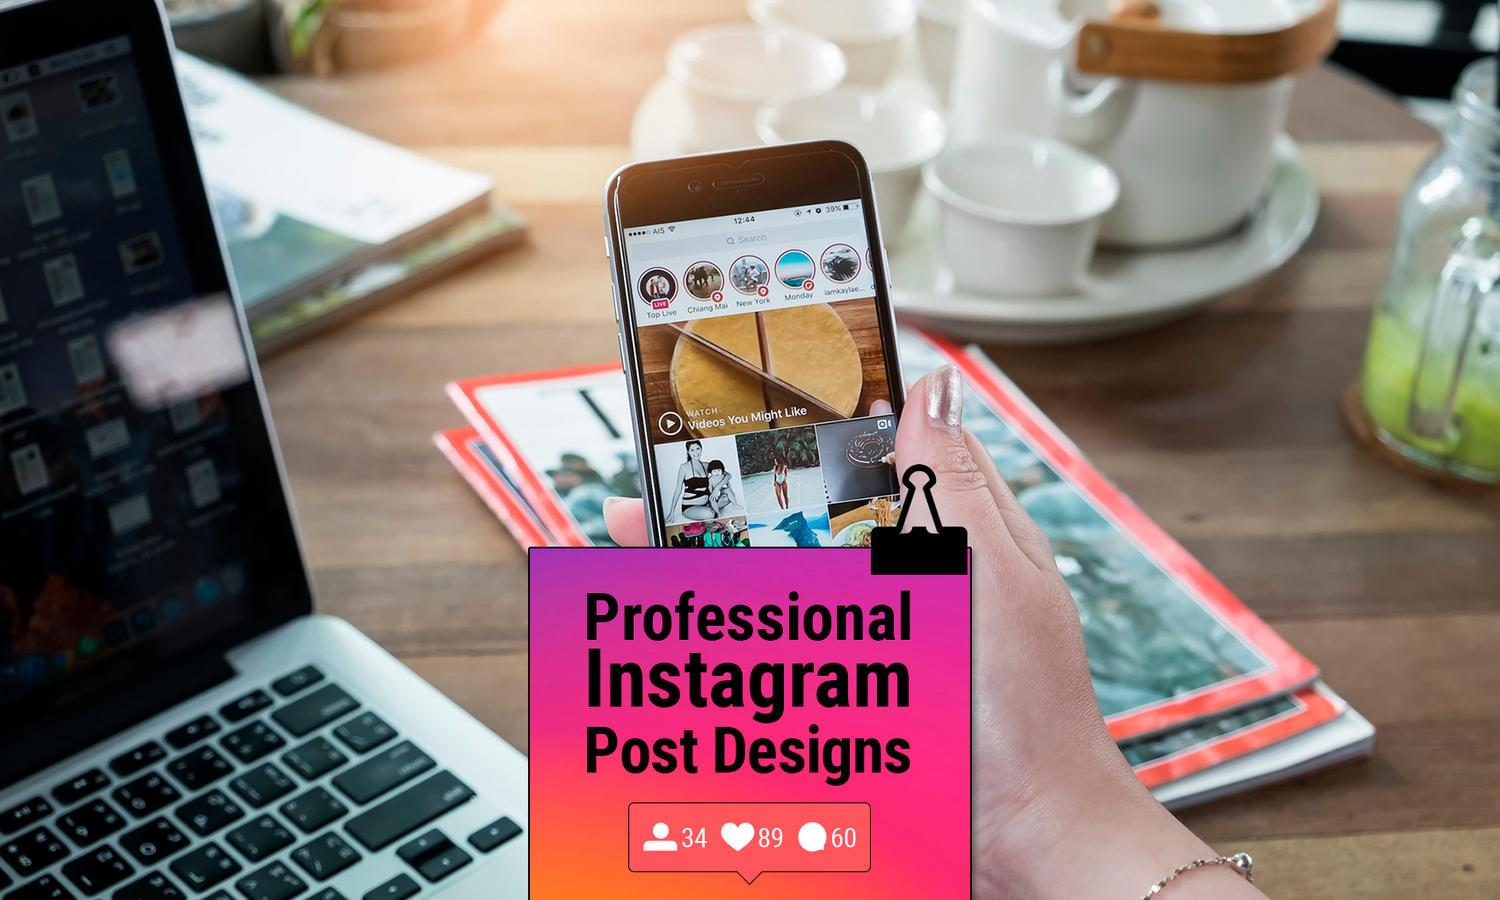 Professional Instagram Post Design by madridnyc - 111972